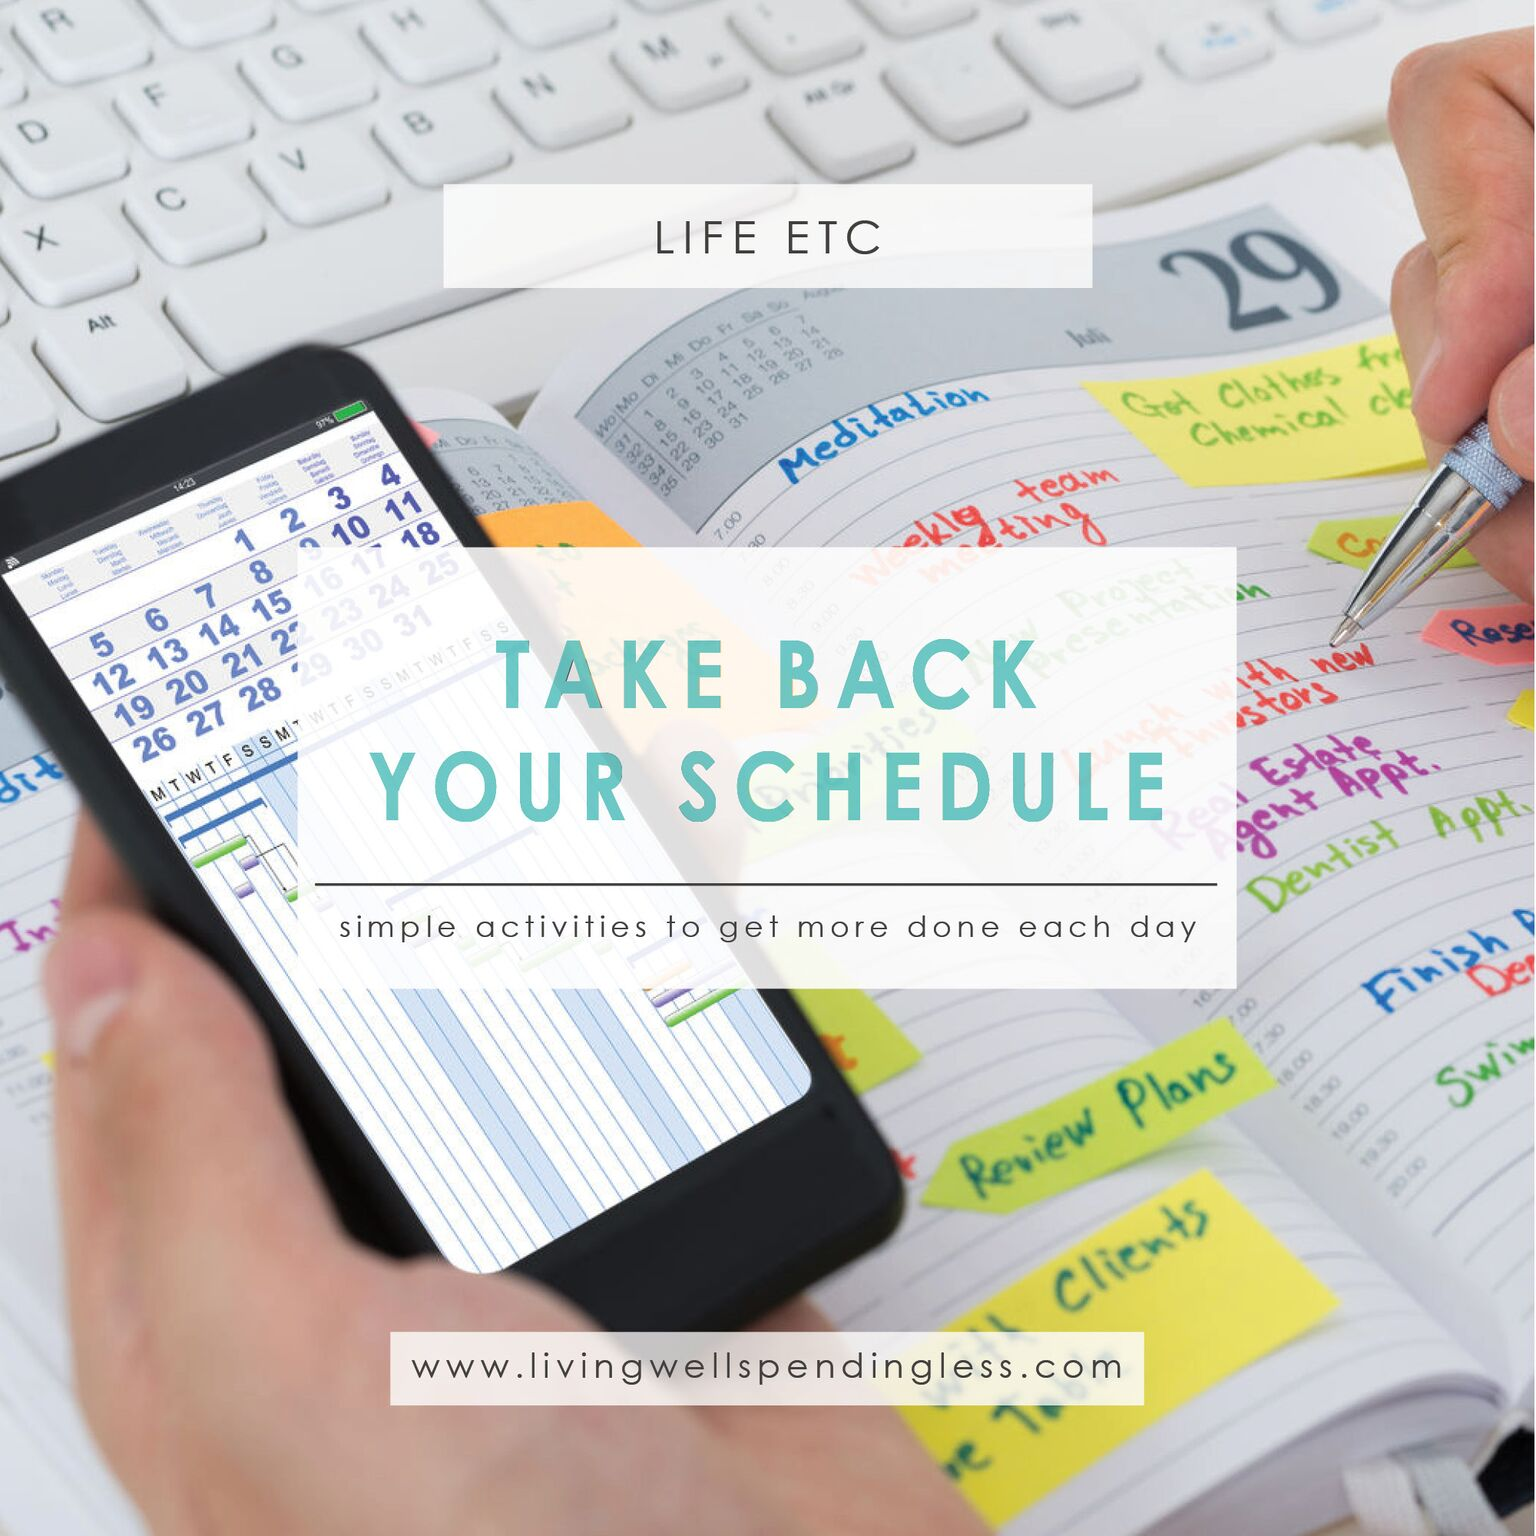 Take Back Your Schedule⎢Get More Done Each Day⎢Crush Your Goals⎢Time Management⎢Use Your Time Well⎢Productivity